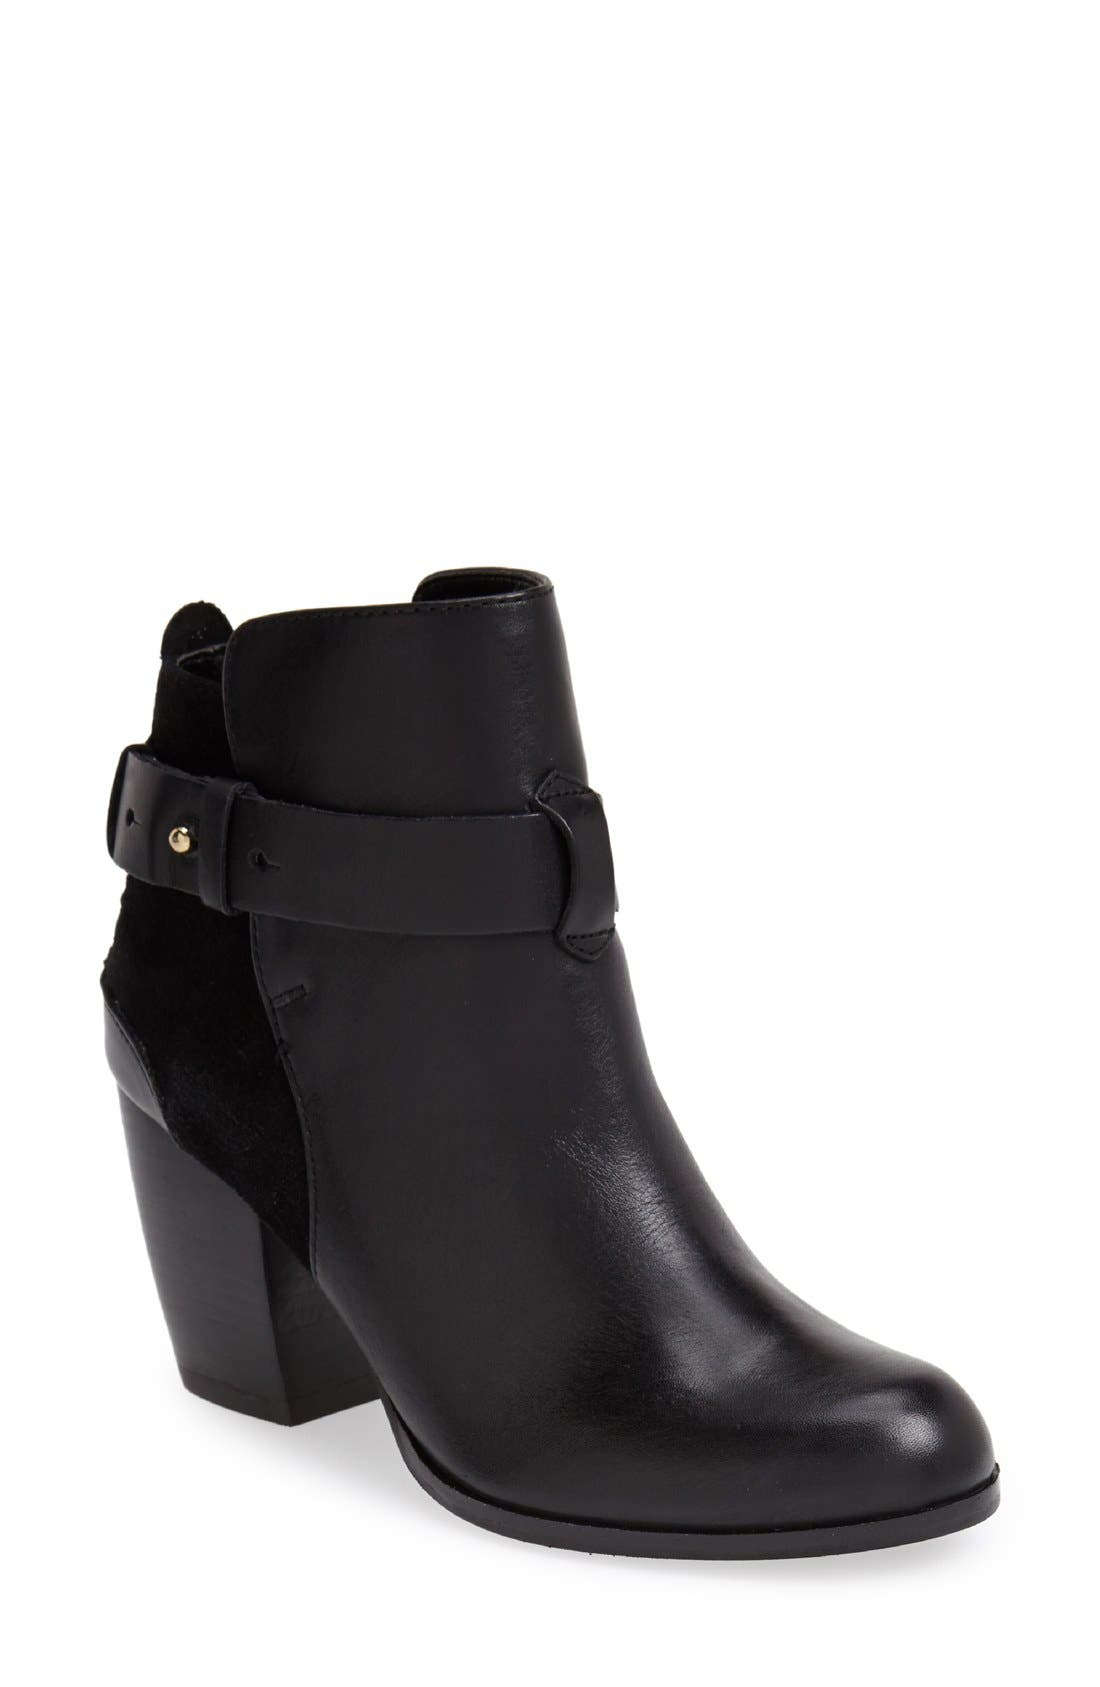 'Parmar' Chunky Heel Bootie,                             Main thumbnail 1, color,                             002